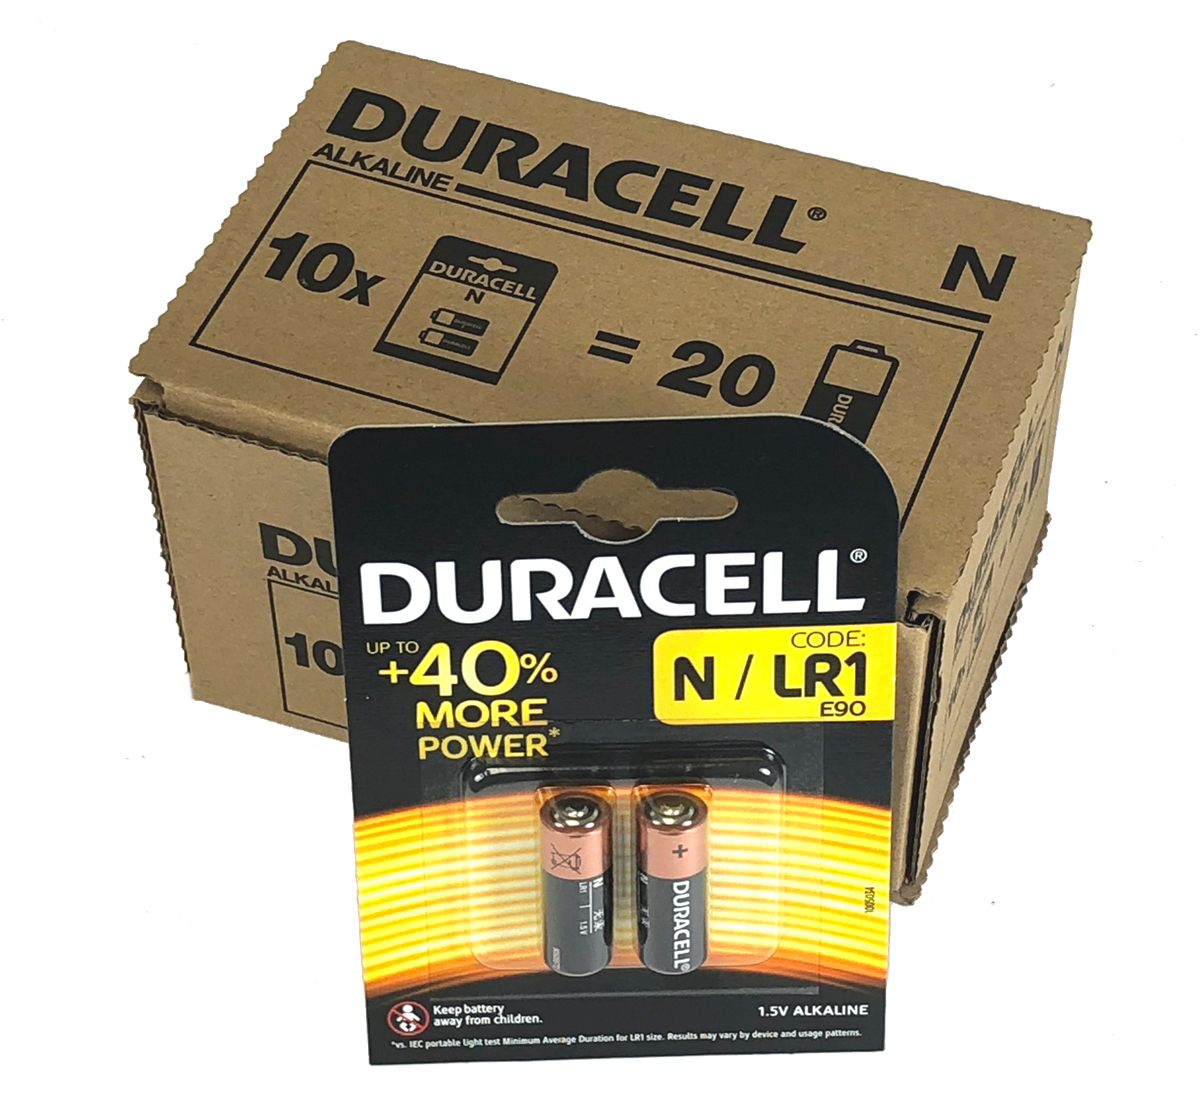 Duracell Batteries MN9100 N LR1 Battery Pack of 20